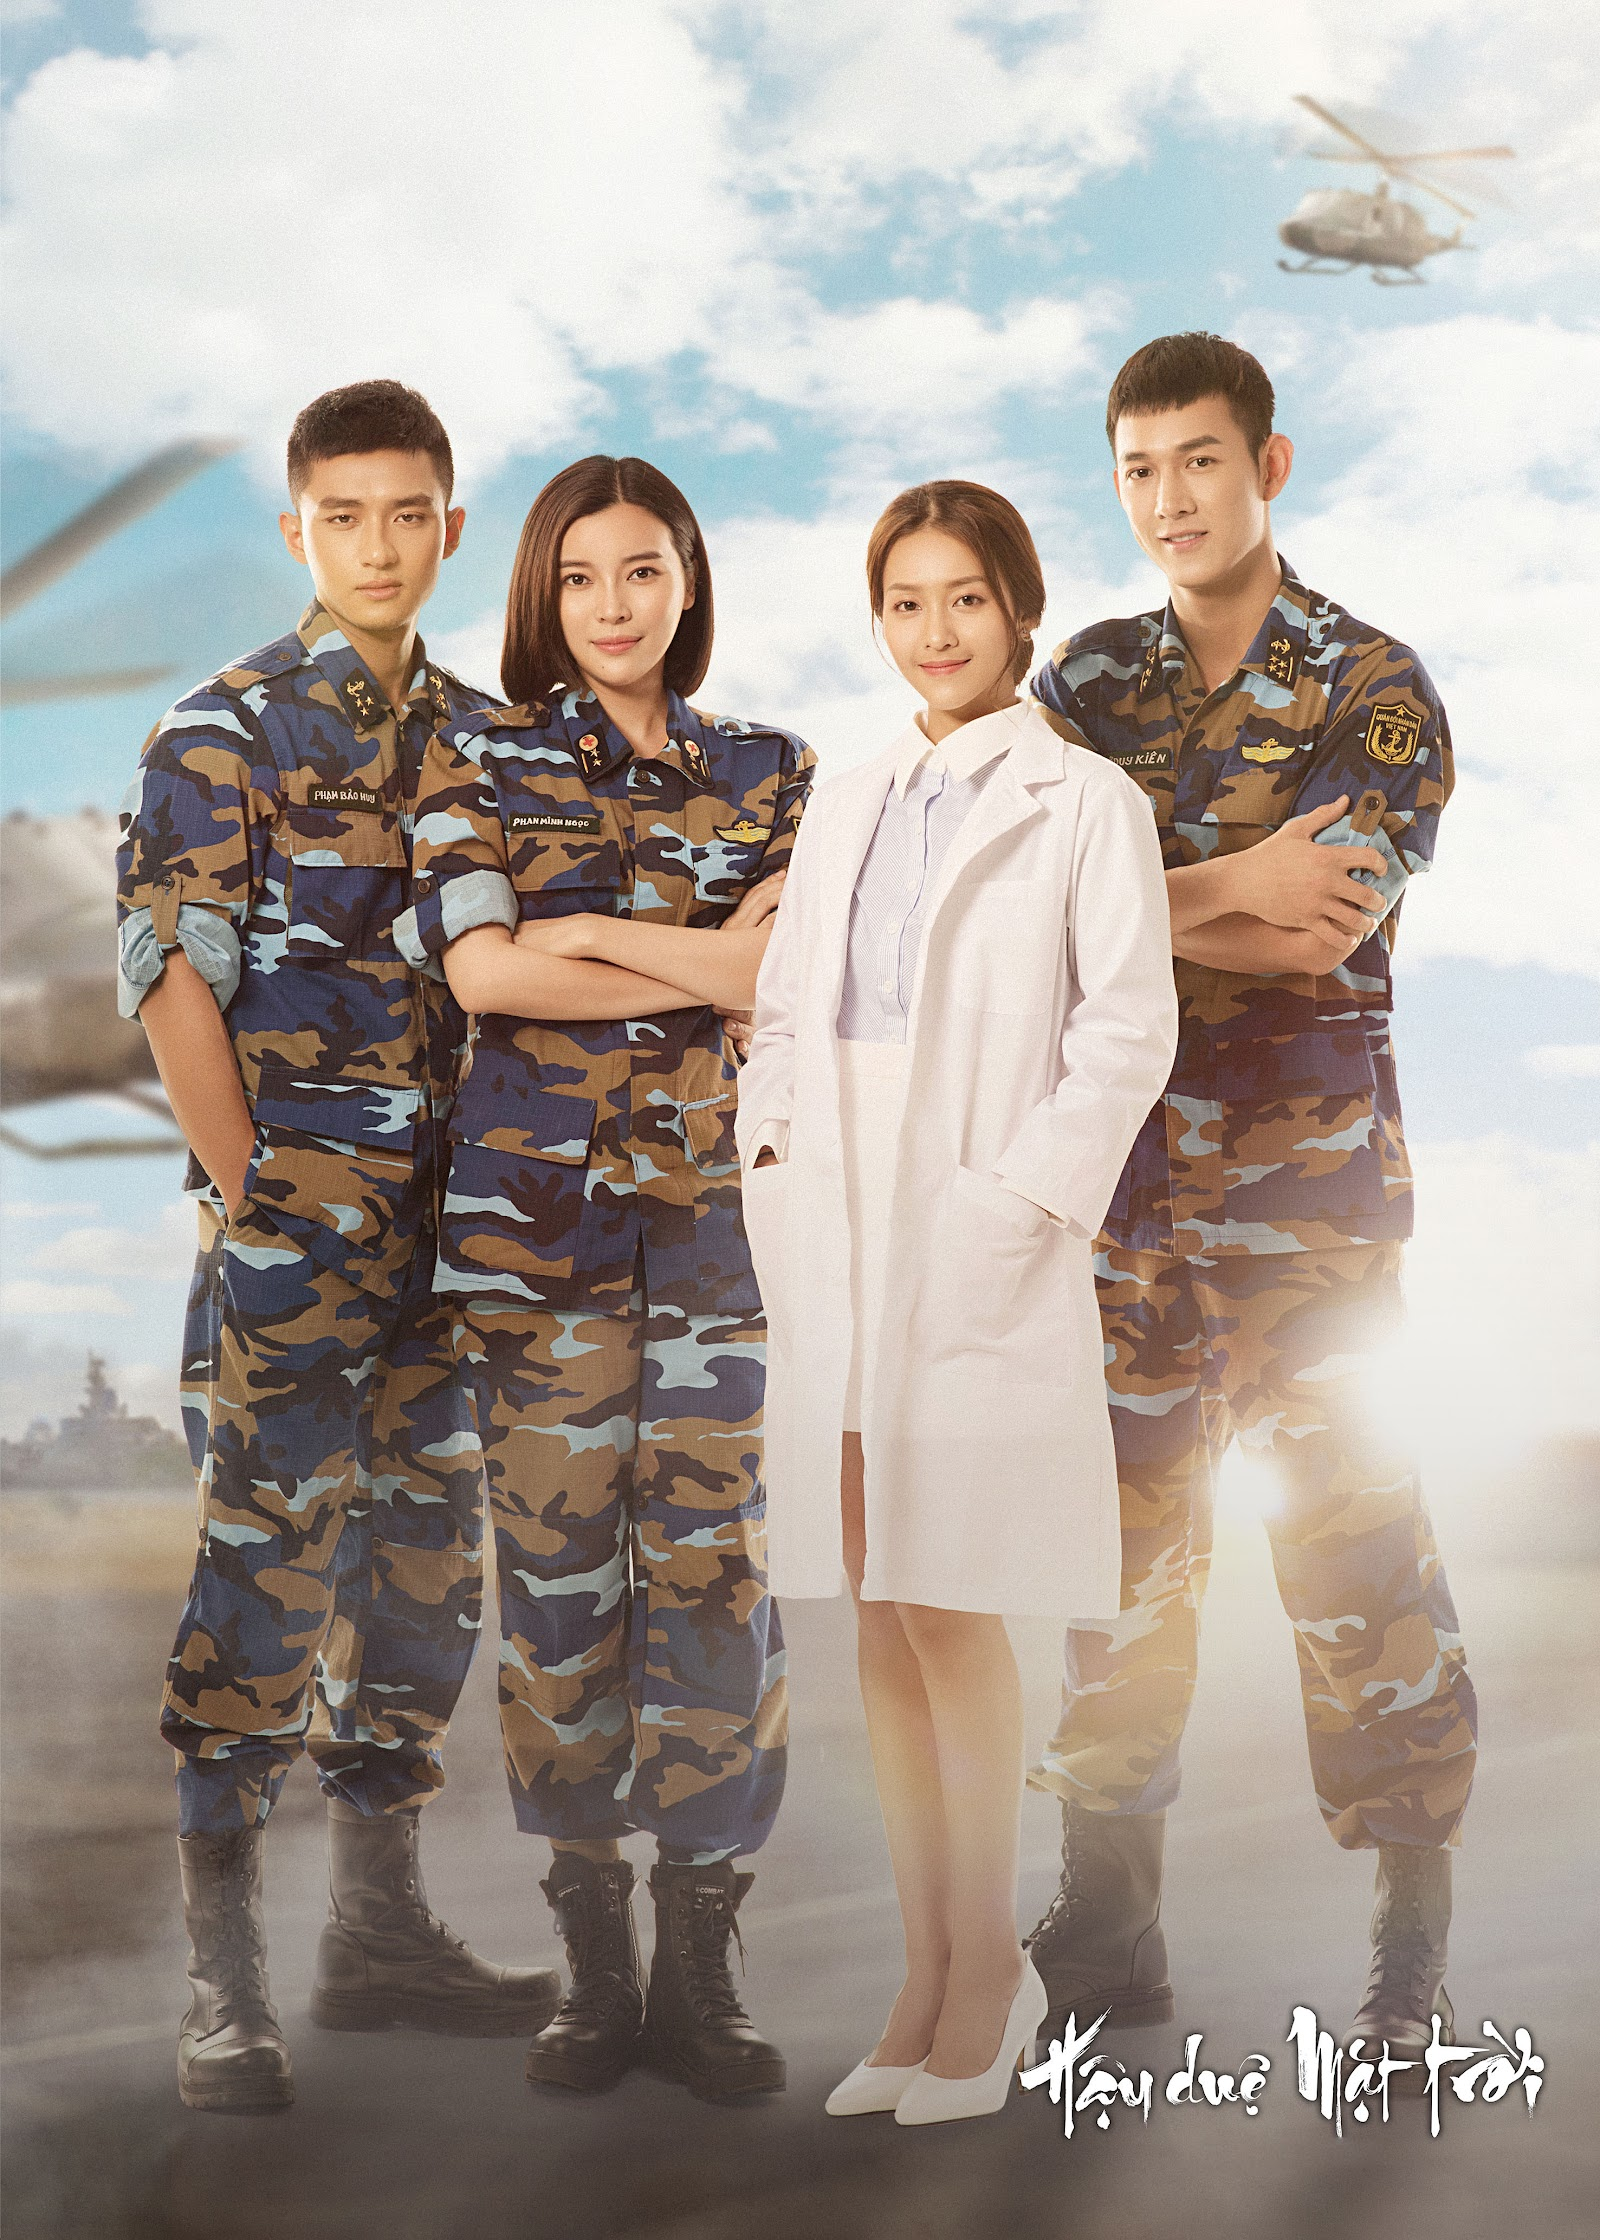 Jul 2017. For more than a year, the stars of the hit South Korean military romance Descendants Of The Sun had dismissed rumours that they were dating.